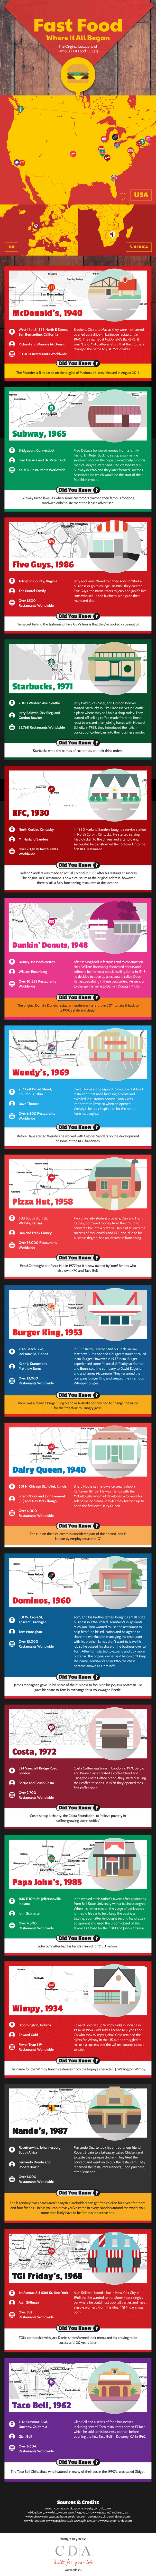 Origins of the most popular fast food restauarants